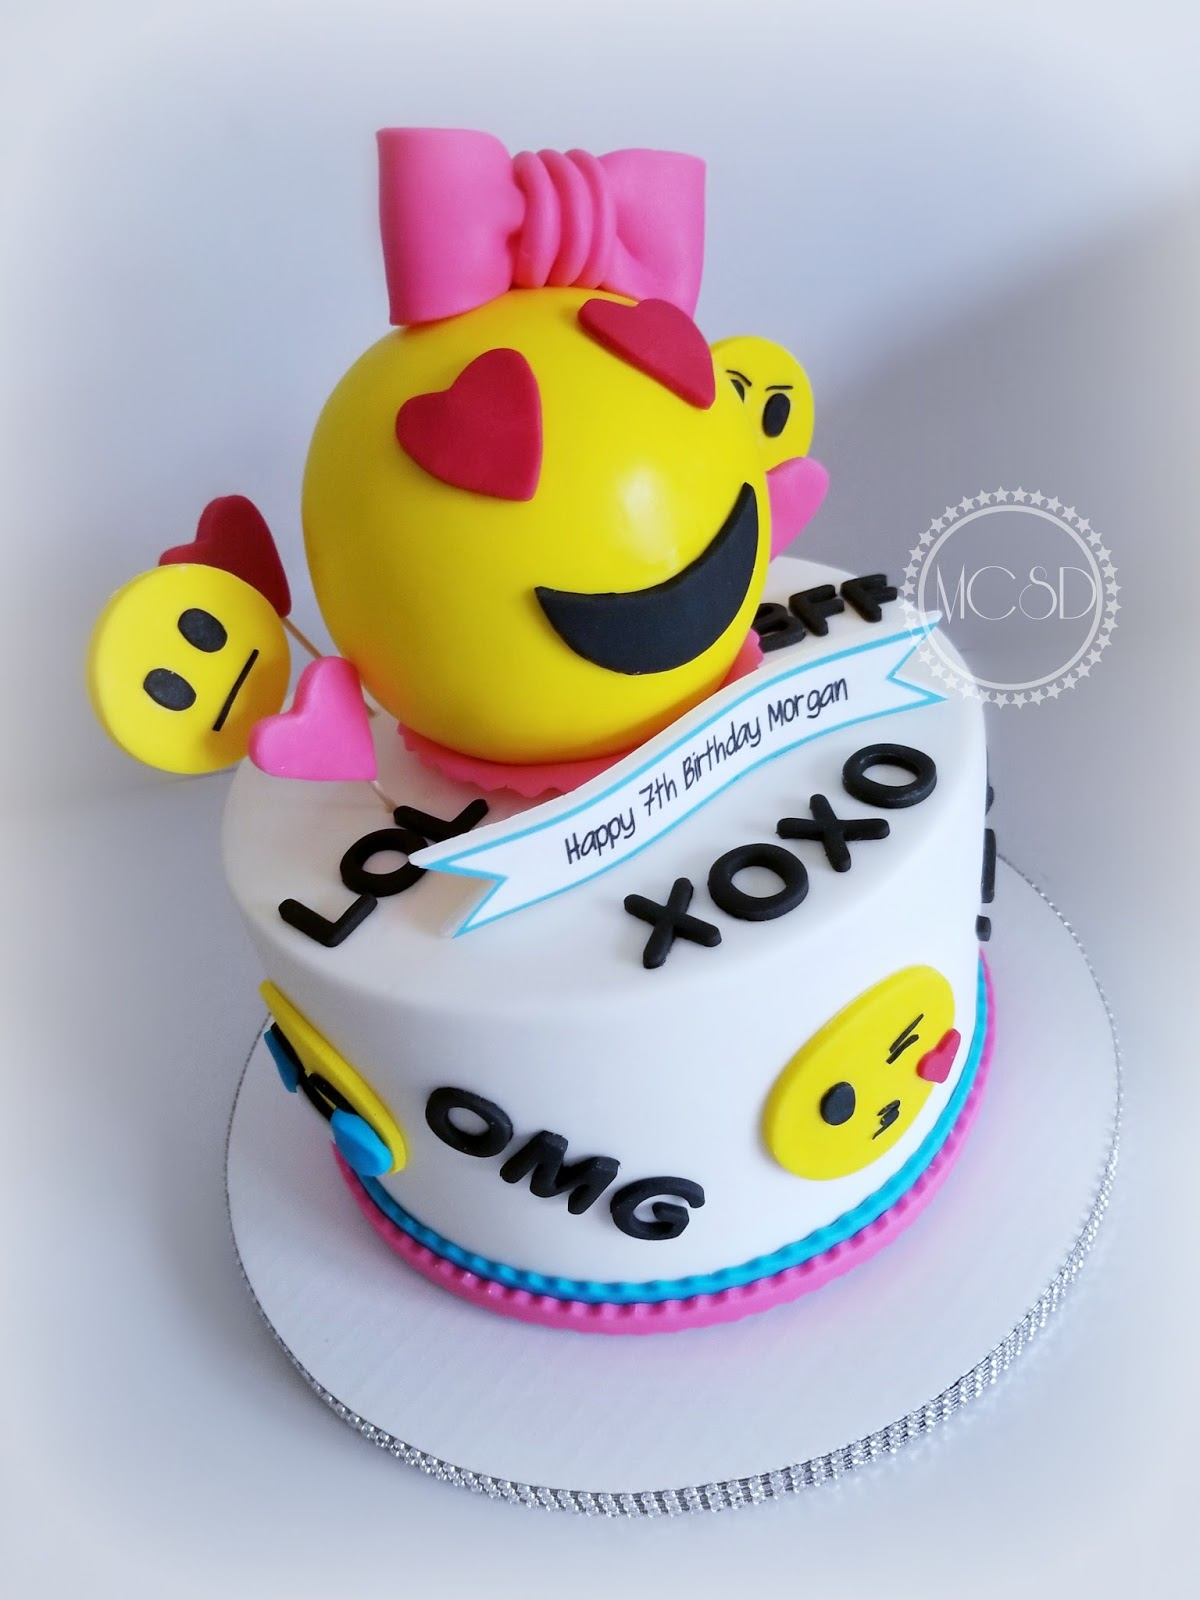 My Cake Sweet Dreams Emoji Birthday Cake